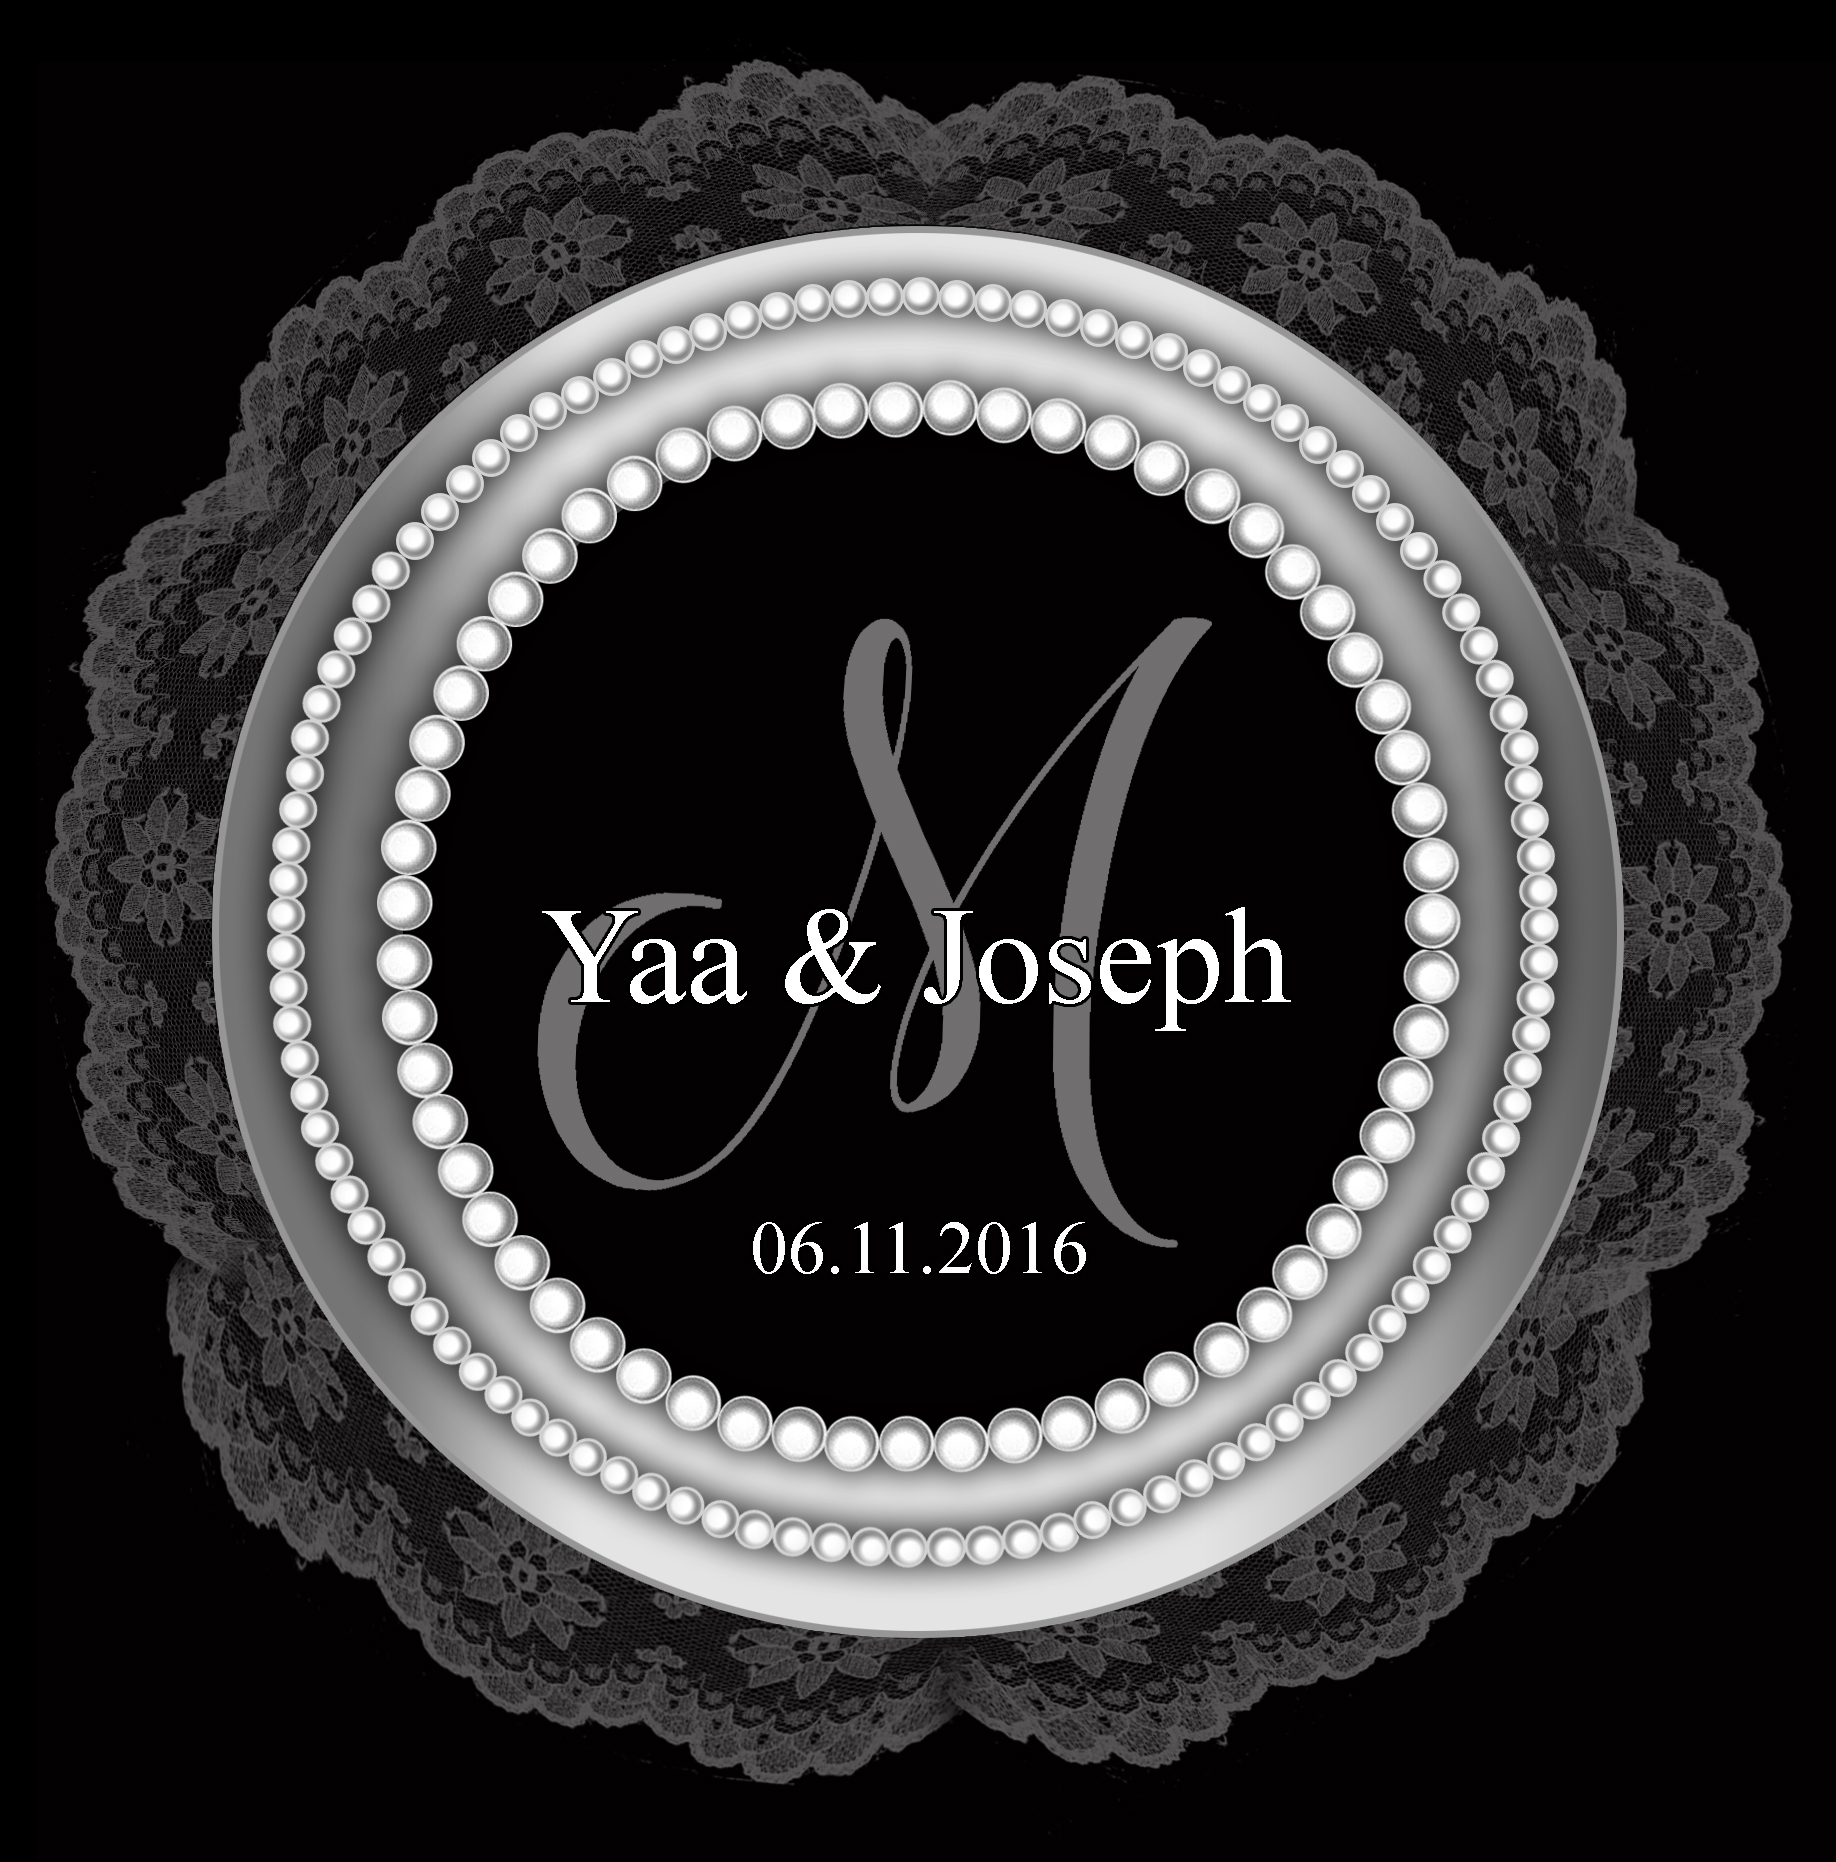 yaa 1 monogram smaller beads lace halo.jpg